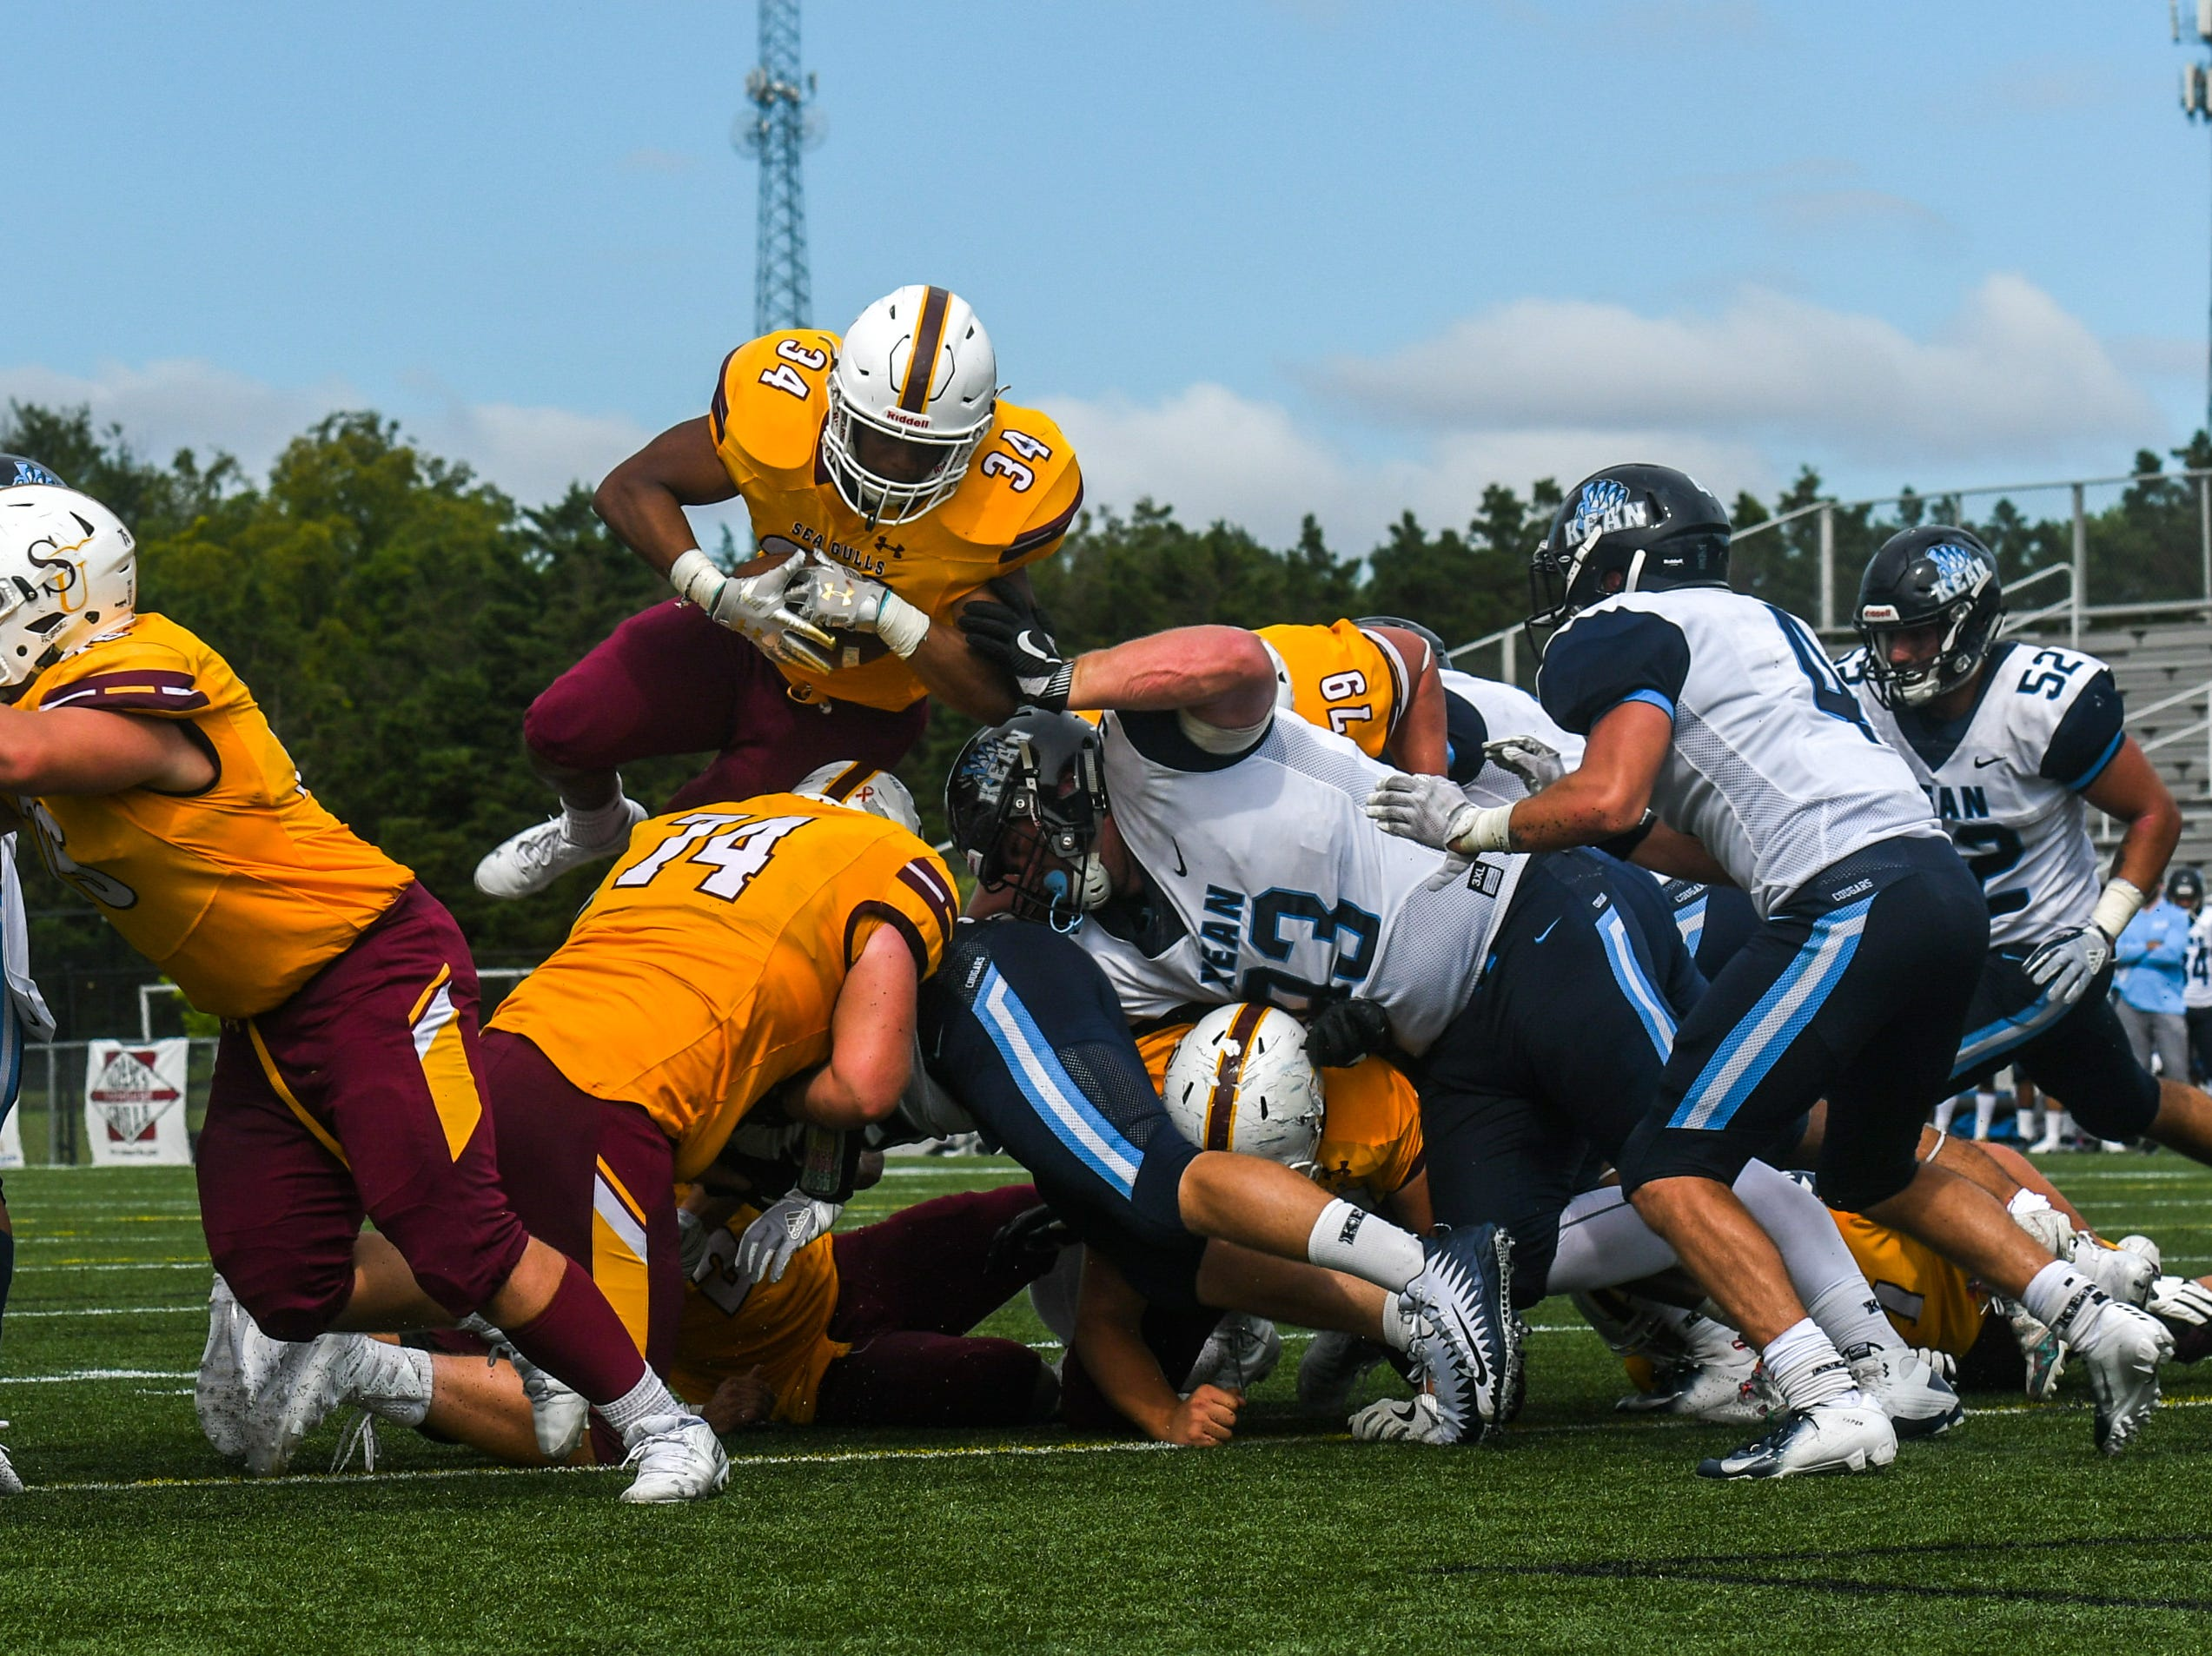 Salisbury University's Kadarrius Campbell dives for a touchdown against Kean on Saturday, Sept 15, 2018 at Seagull Stadium.